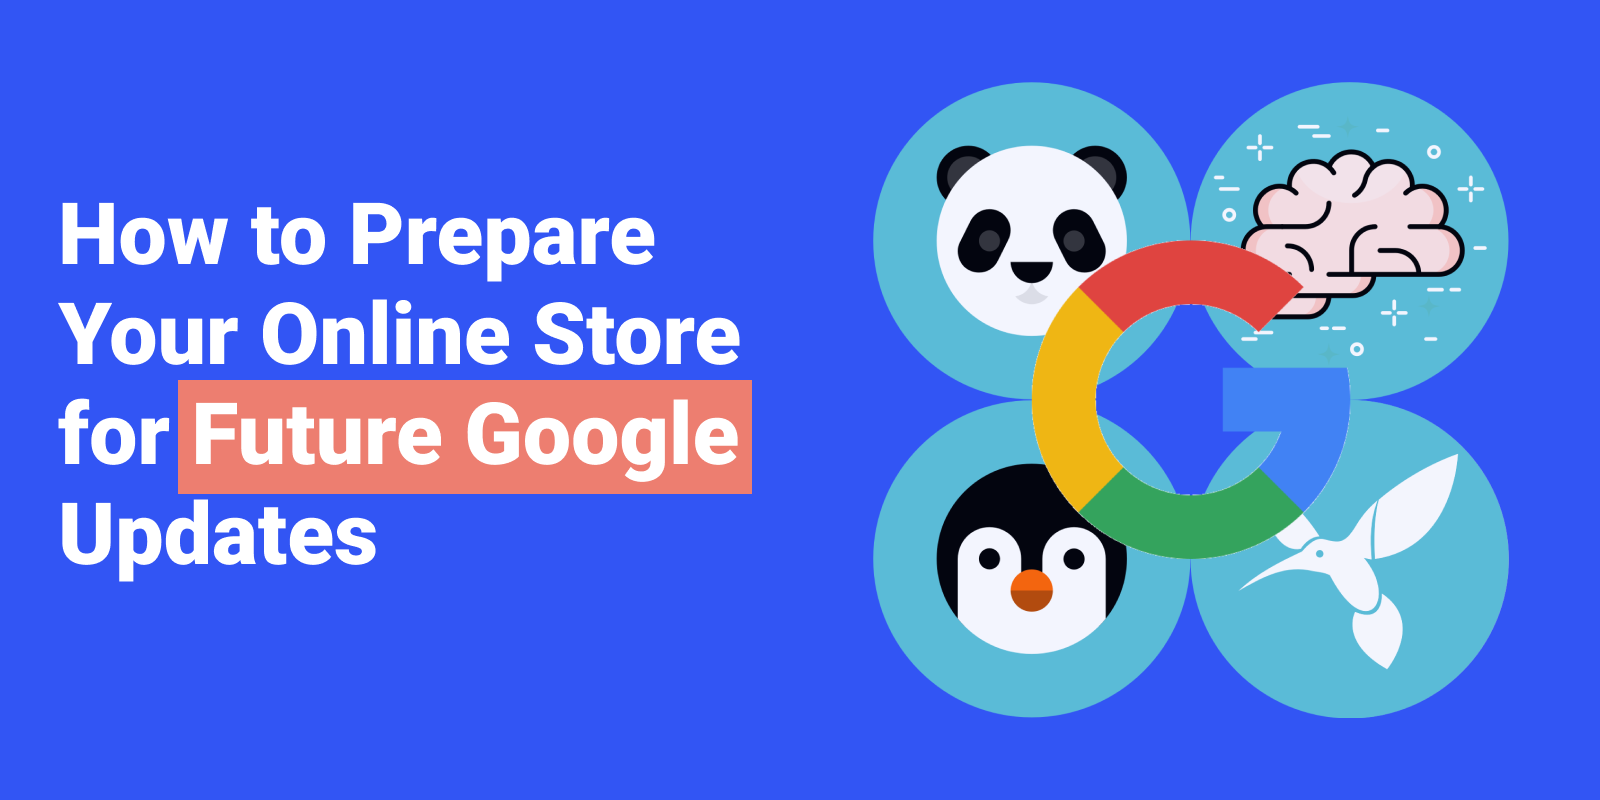 How to Prepare Your Online Store for Future Google Updates